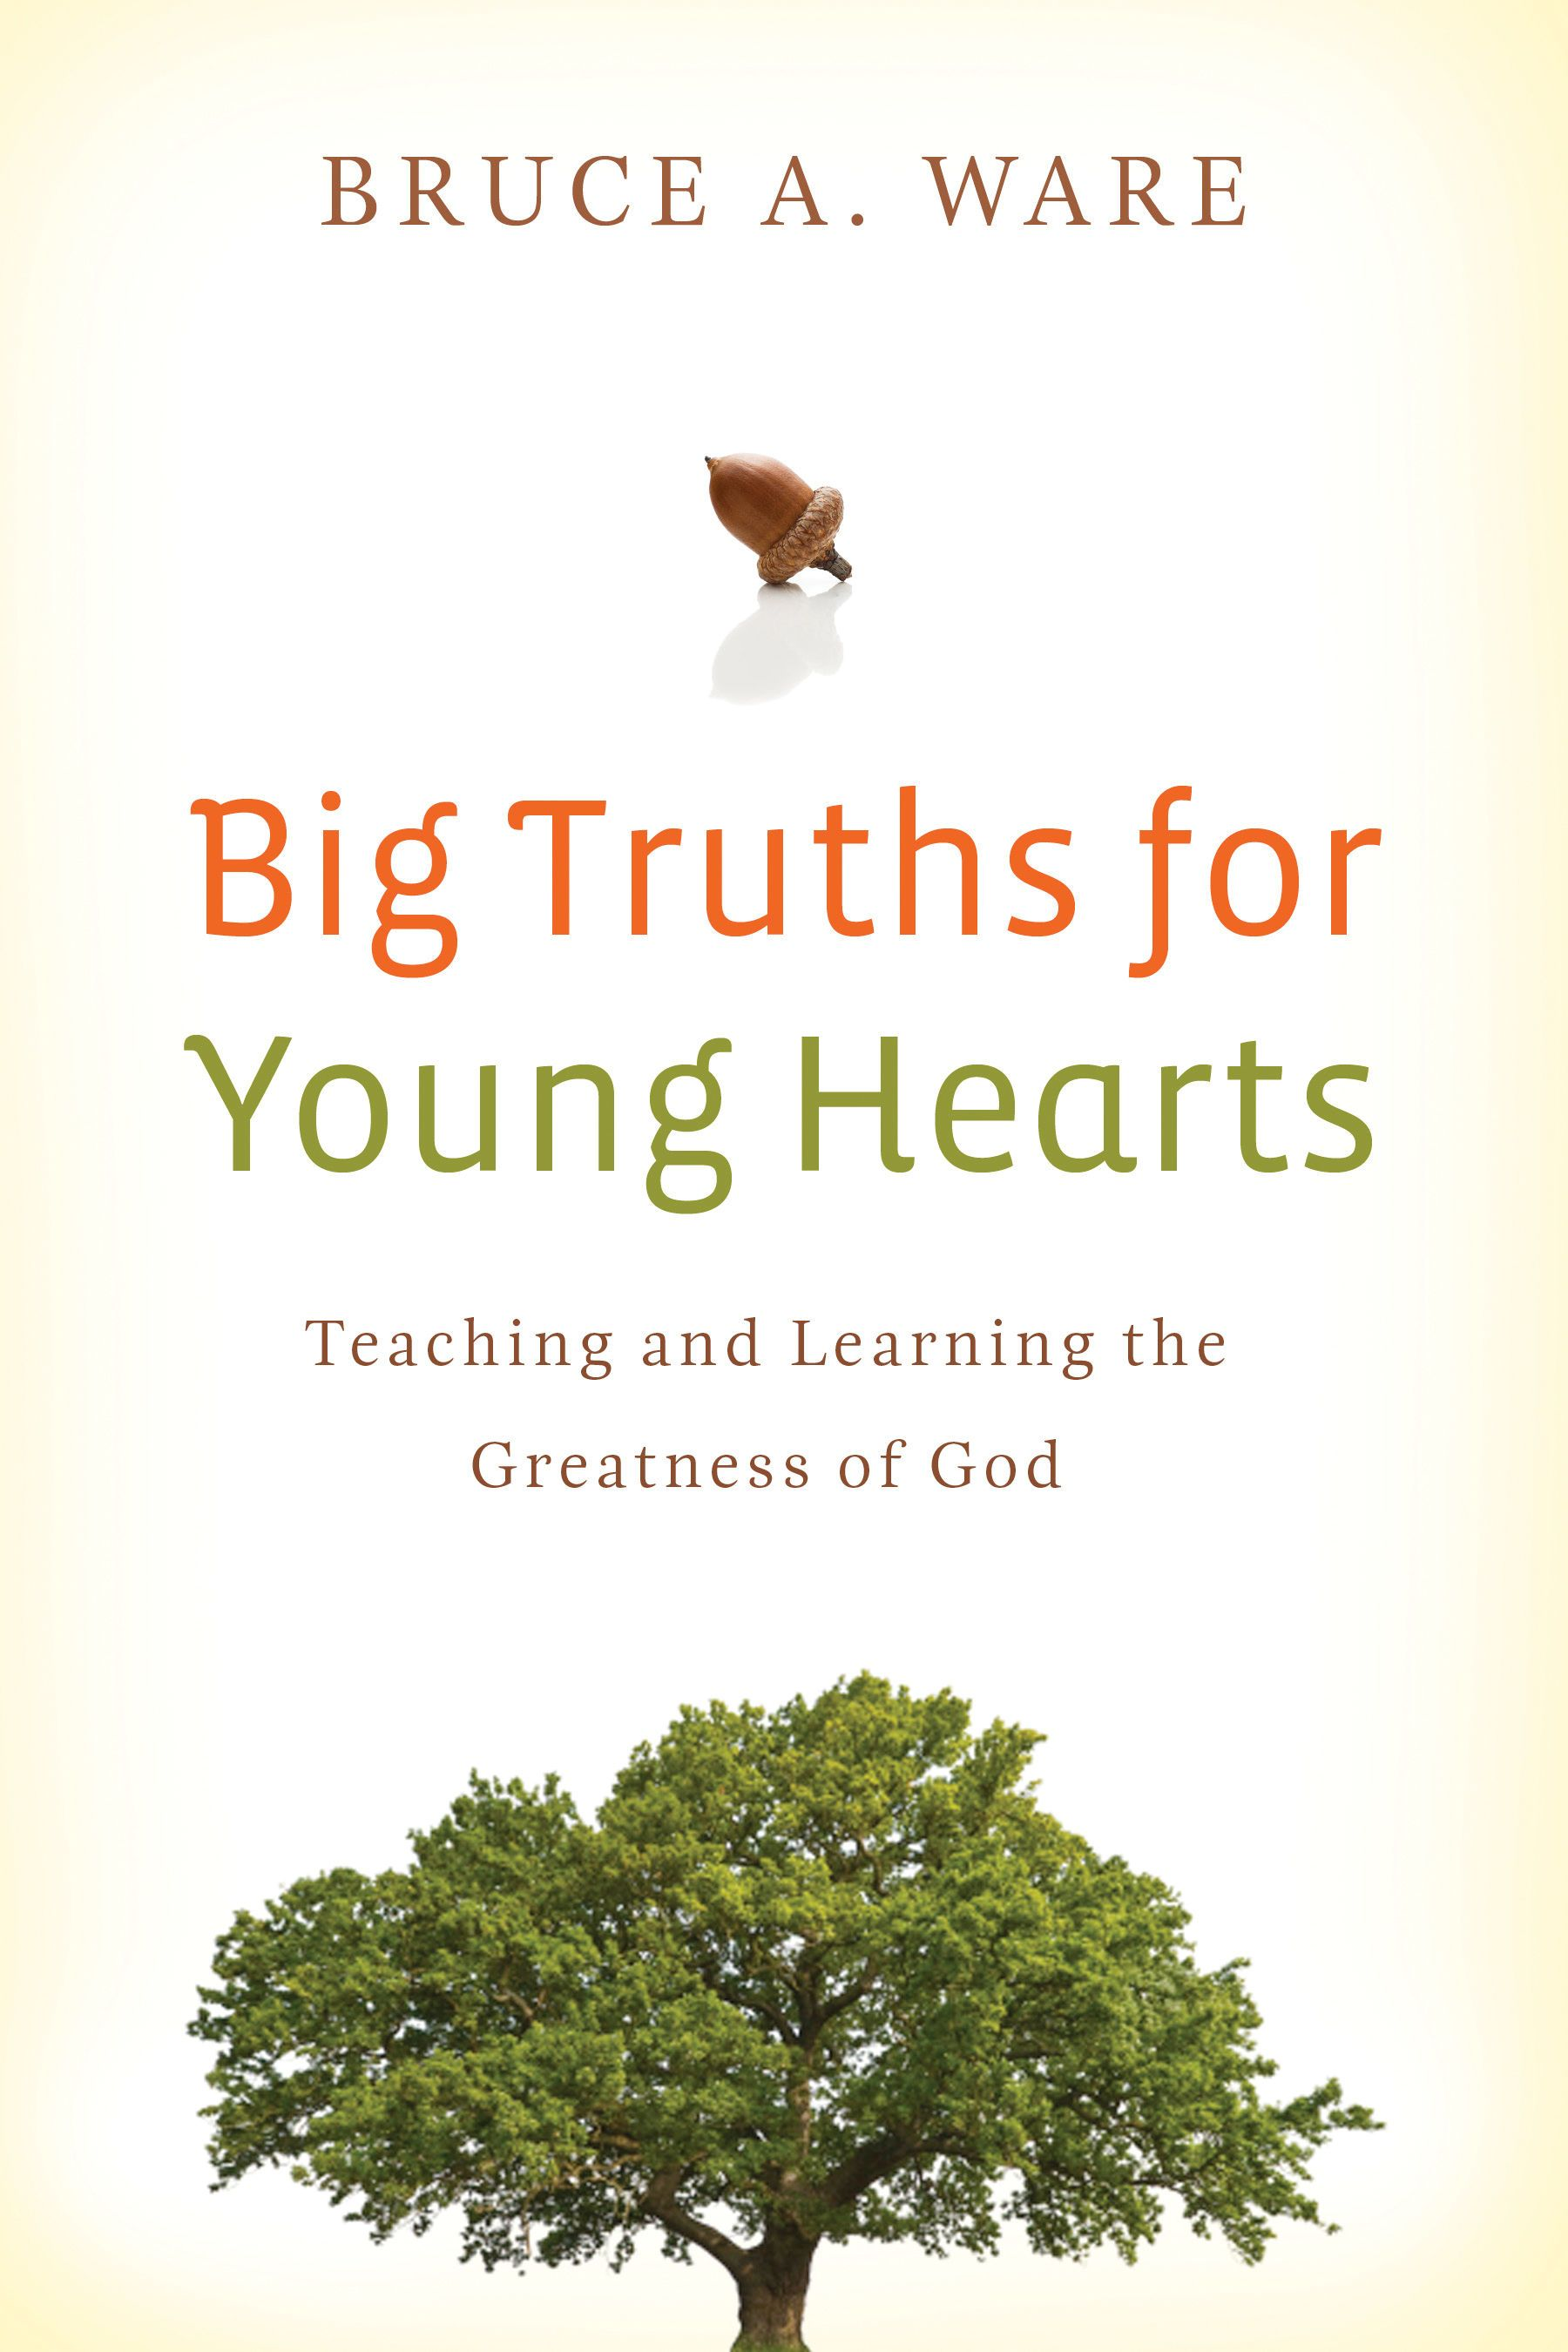 Big Truths for Young Hearts by Bruce A. Ware, ISBN: 9781433506017